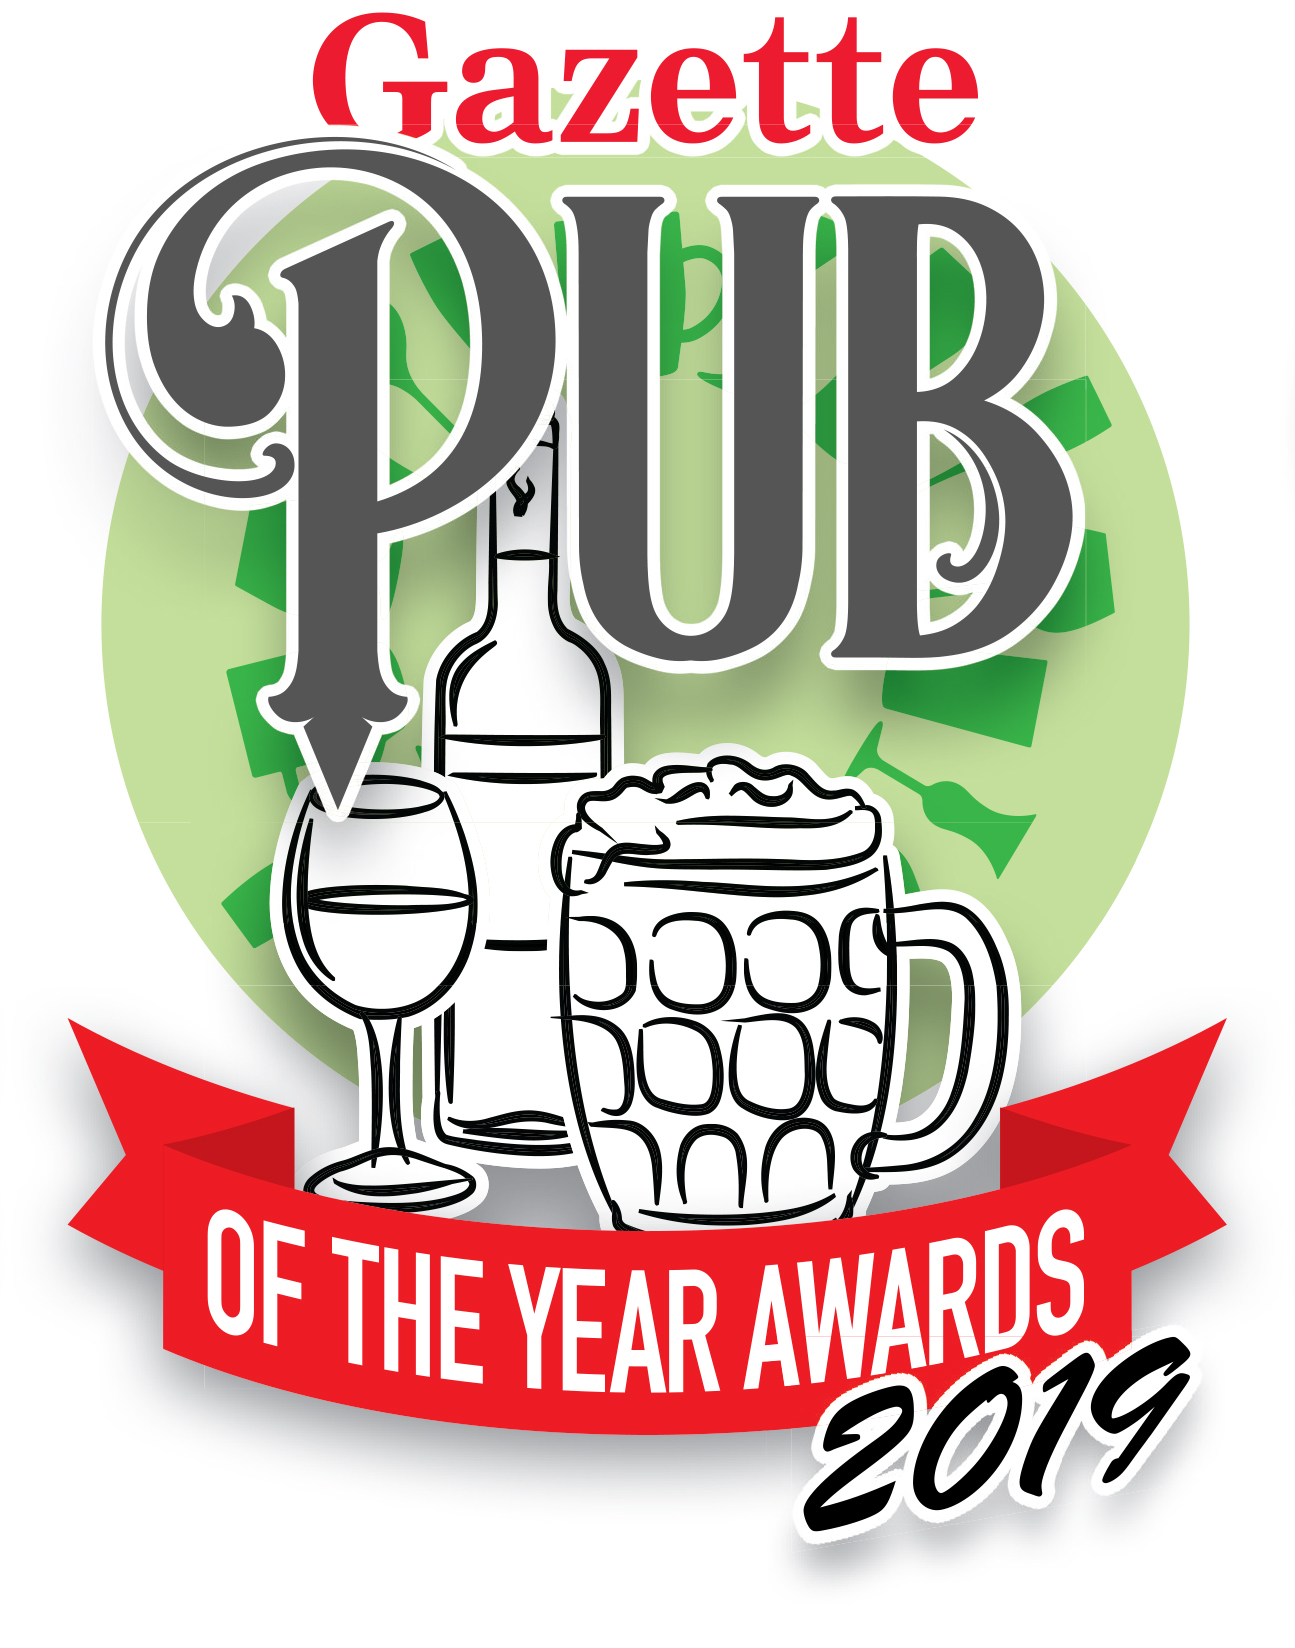 We are looking for your Pub of the Year - Who wins? You decide!